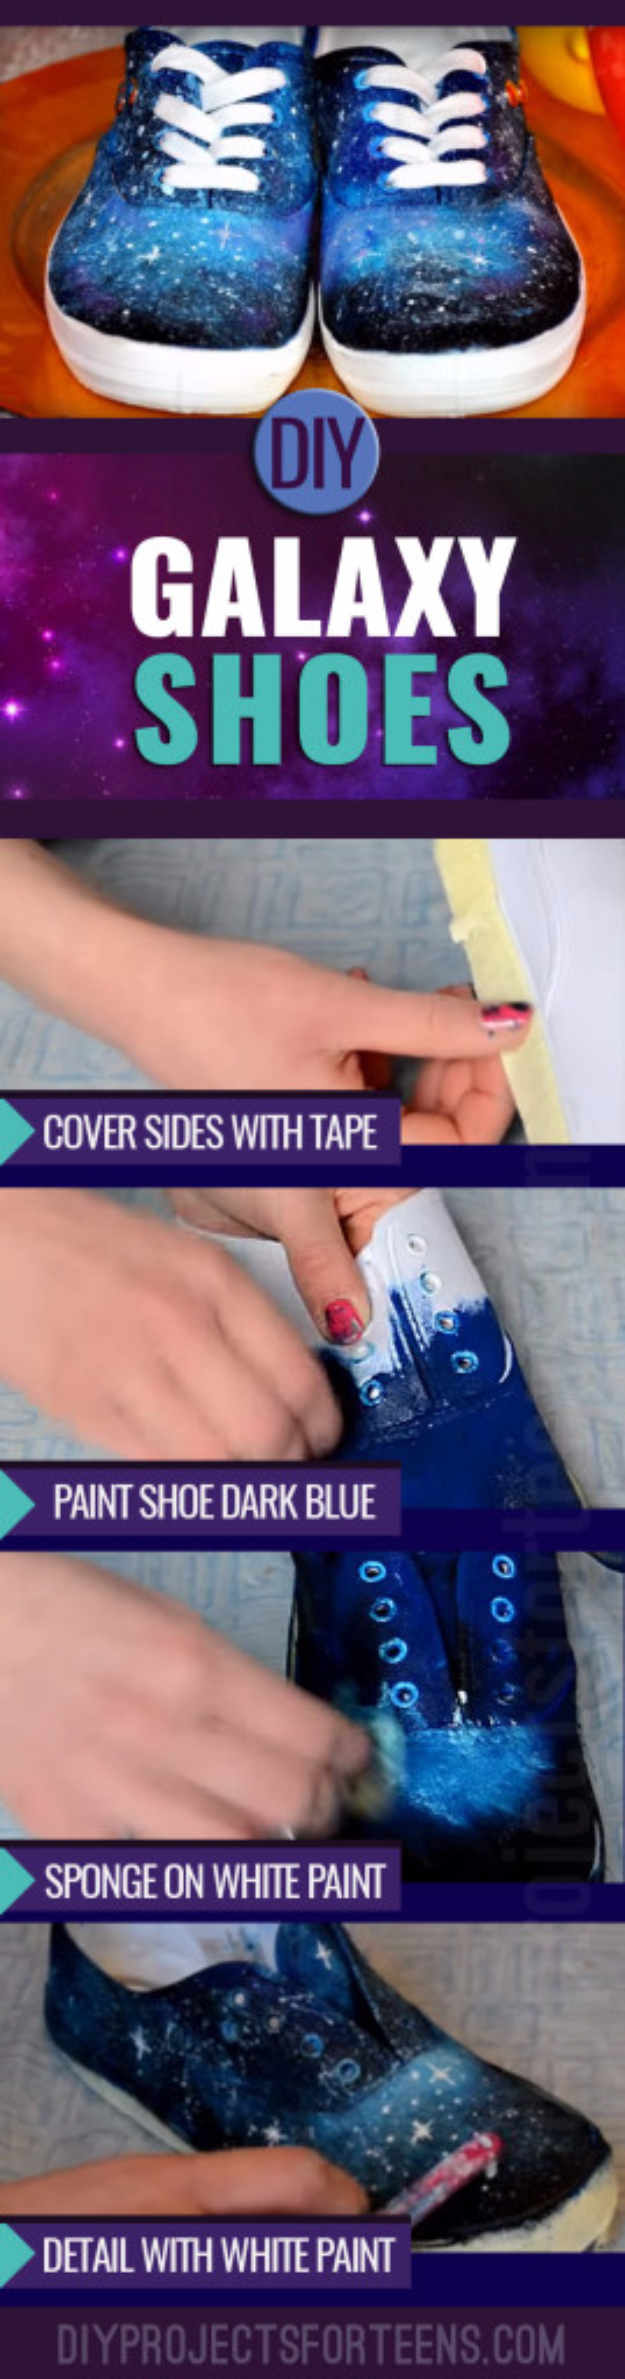 DIY Projects for Teenagers - DIY Galaxy Shoes - Cool Teen Crafts Ideas for Bedroom Decor, Gifts, Clothes and Fun Room Organization. Summer and Awesome School Stuff